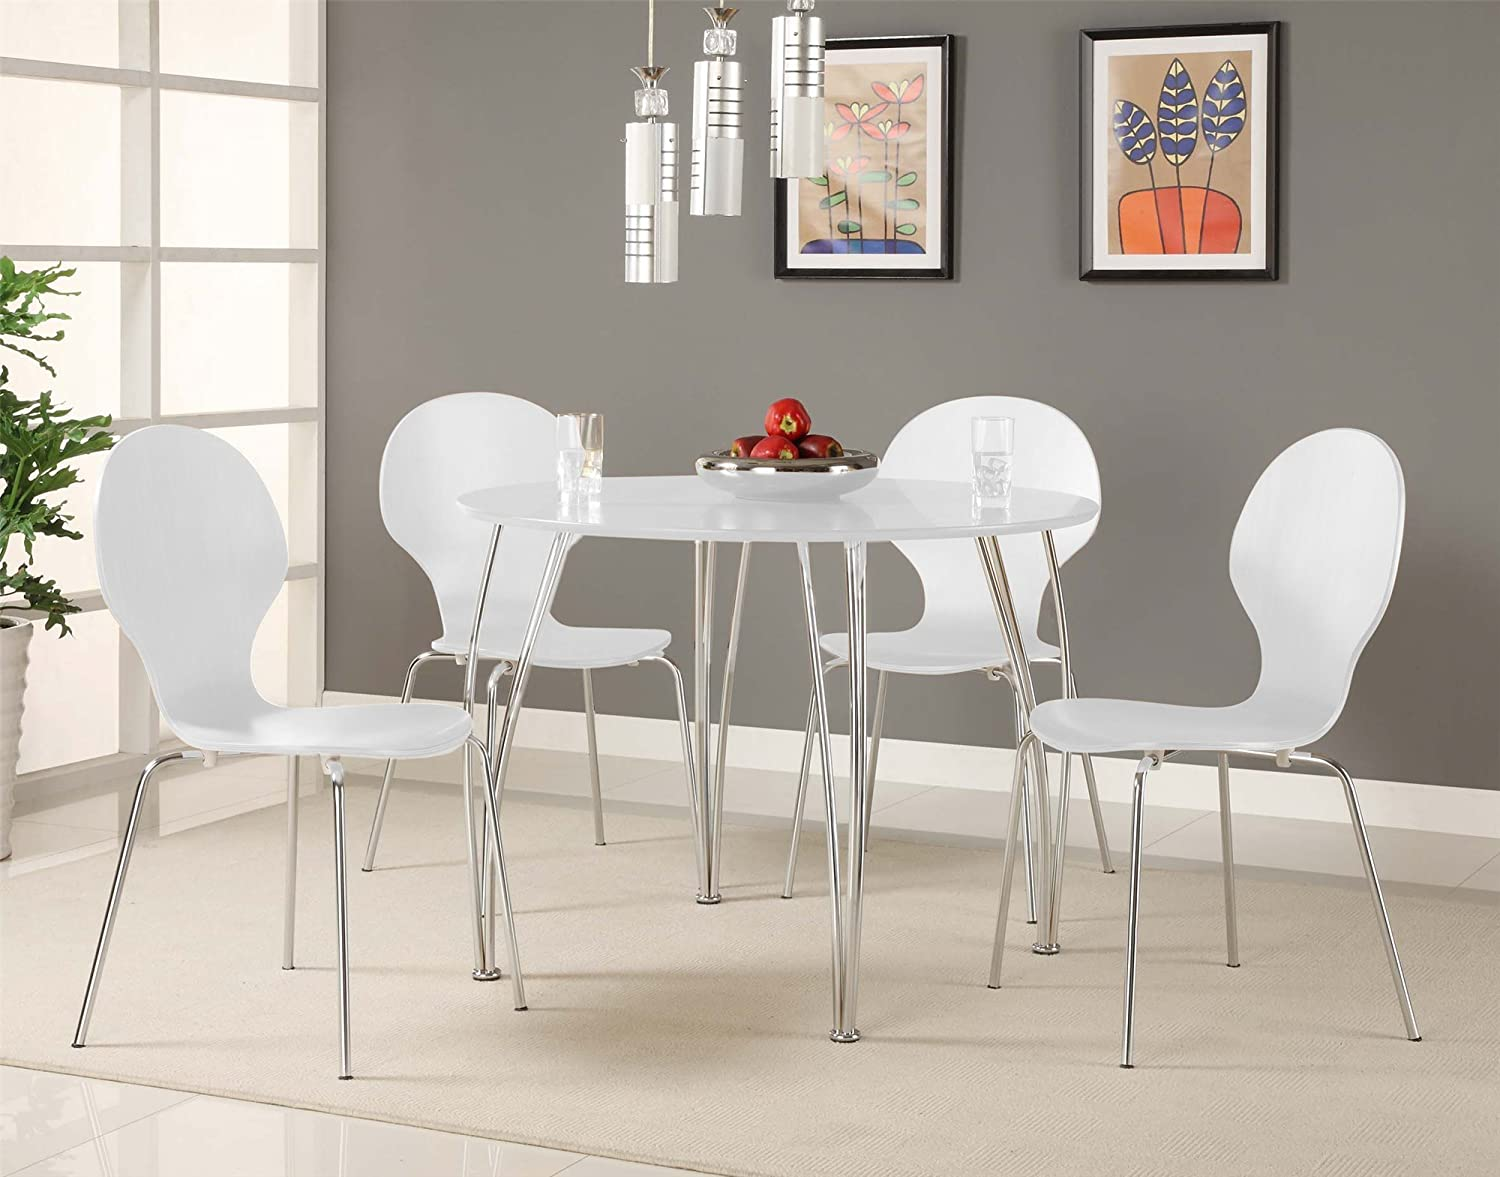 Beautiful Amazon.com   Novogratz Shell Bentwood Modern Round Chairs, White, Set Of 2    Kitchen U0026 Dining Room Furniture